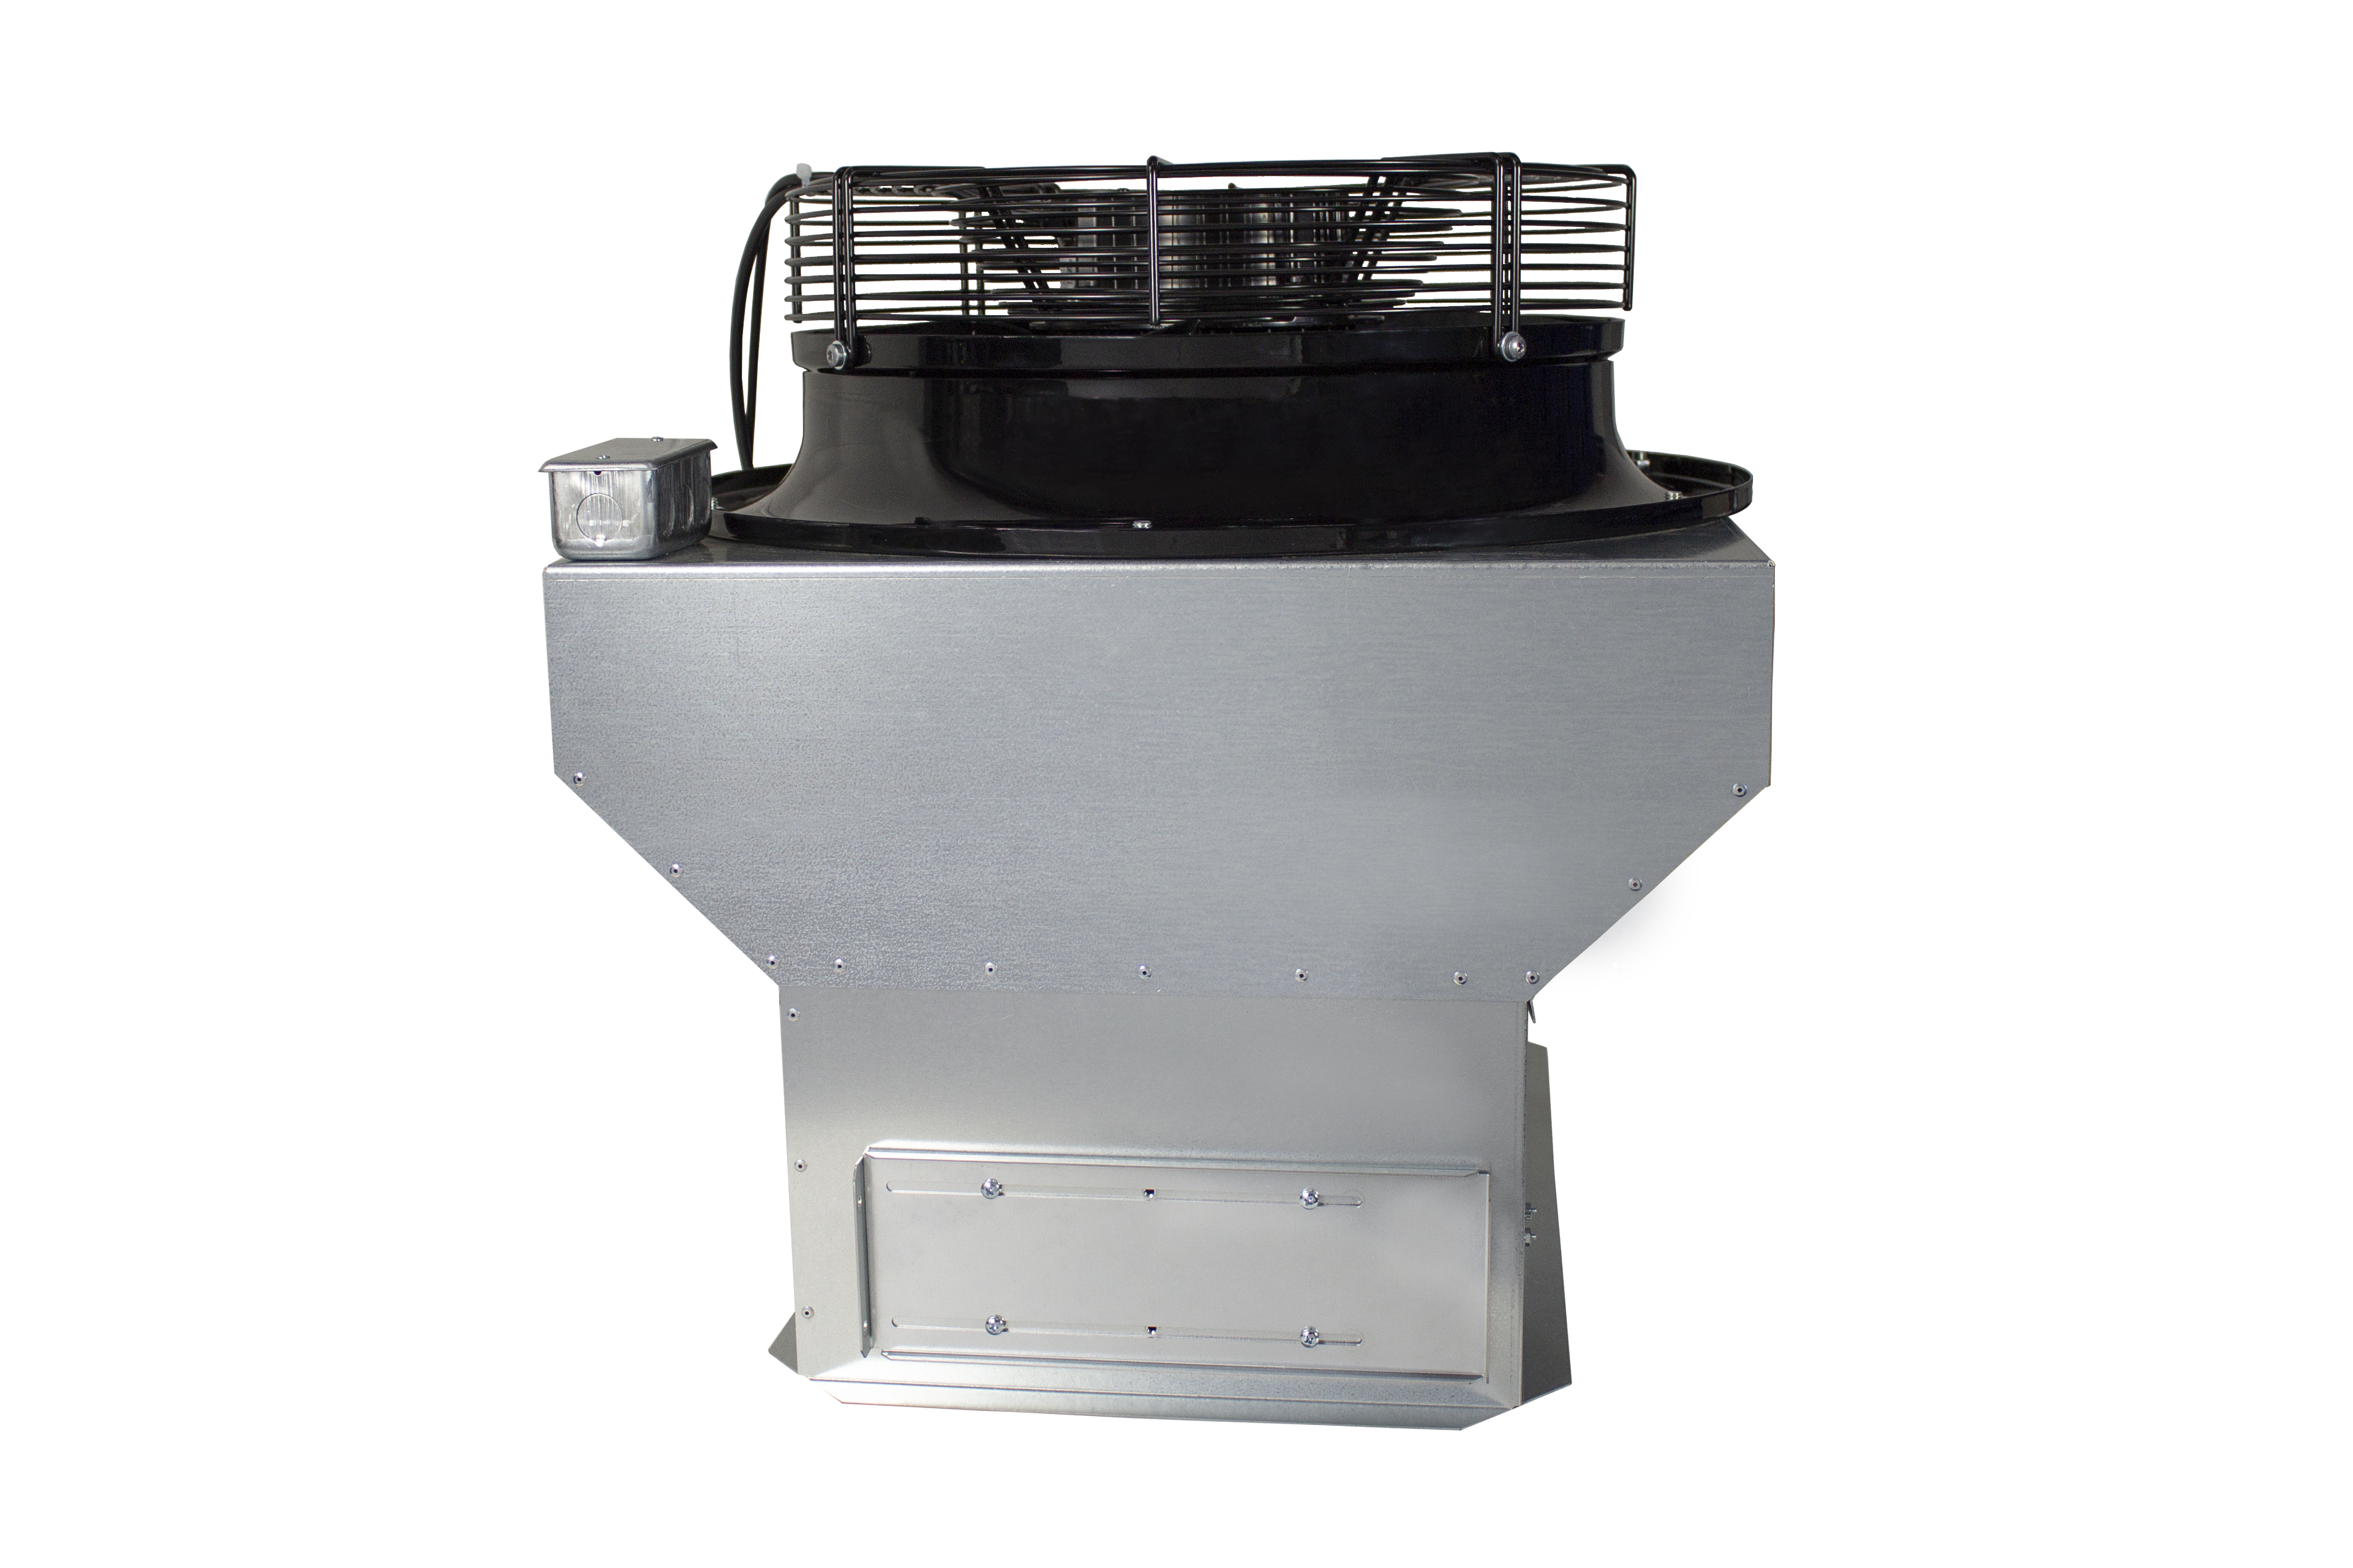 Oransi energy efficient whole house fan with damper box